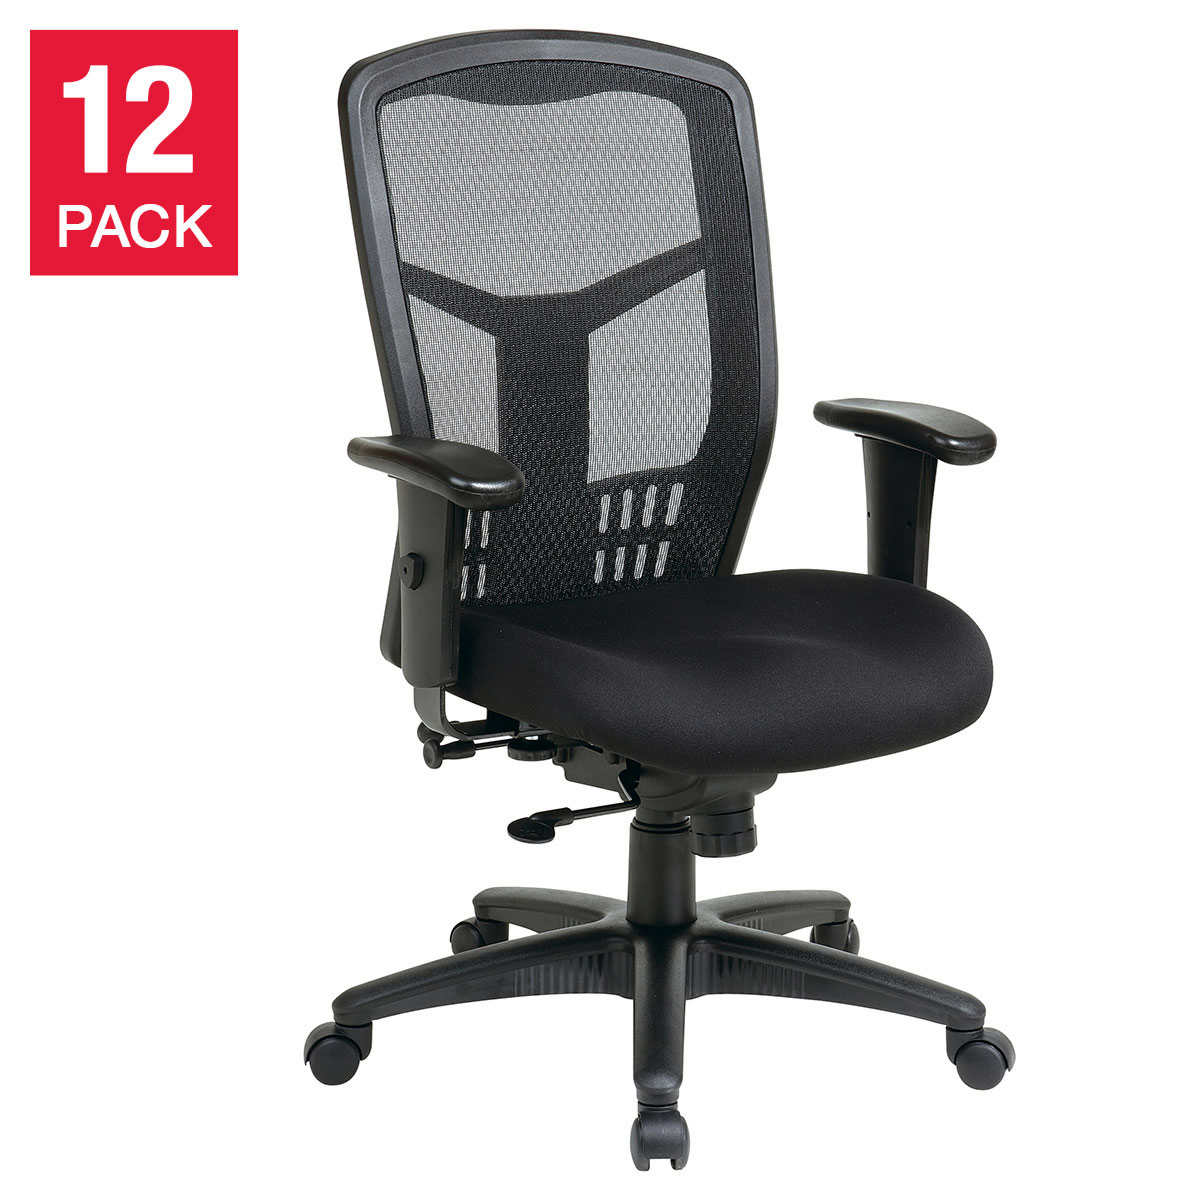 ProGrid High Back Managers Chair, 45-pack